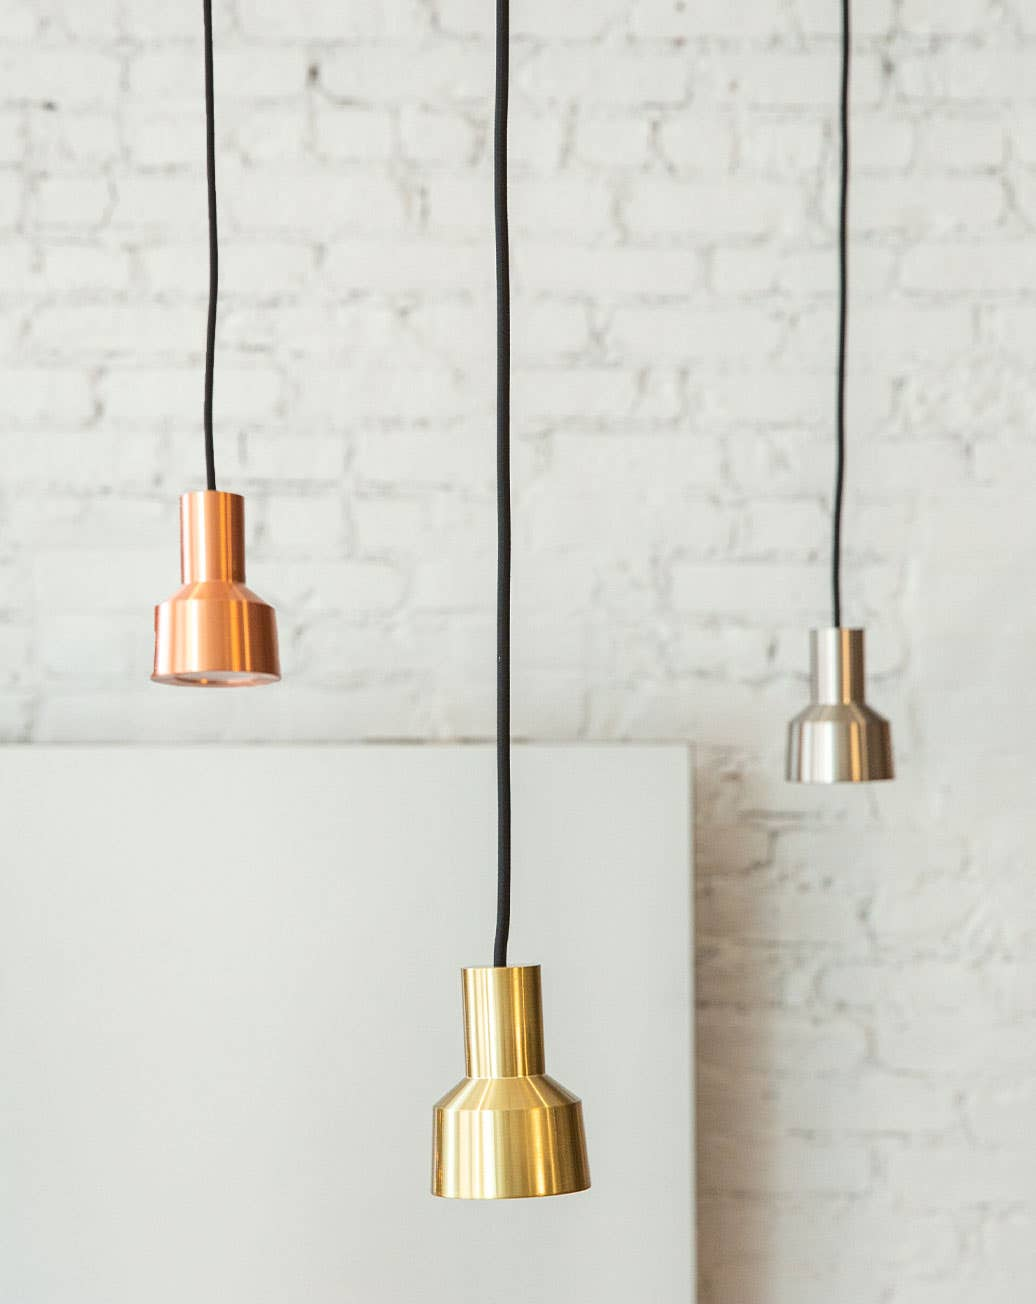 Three Fauve pendant light fixtures from Industry West, in copper, brass, and silver